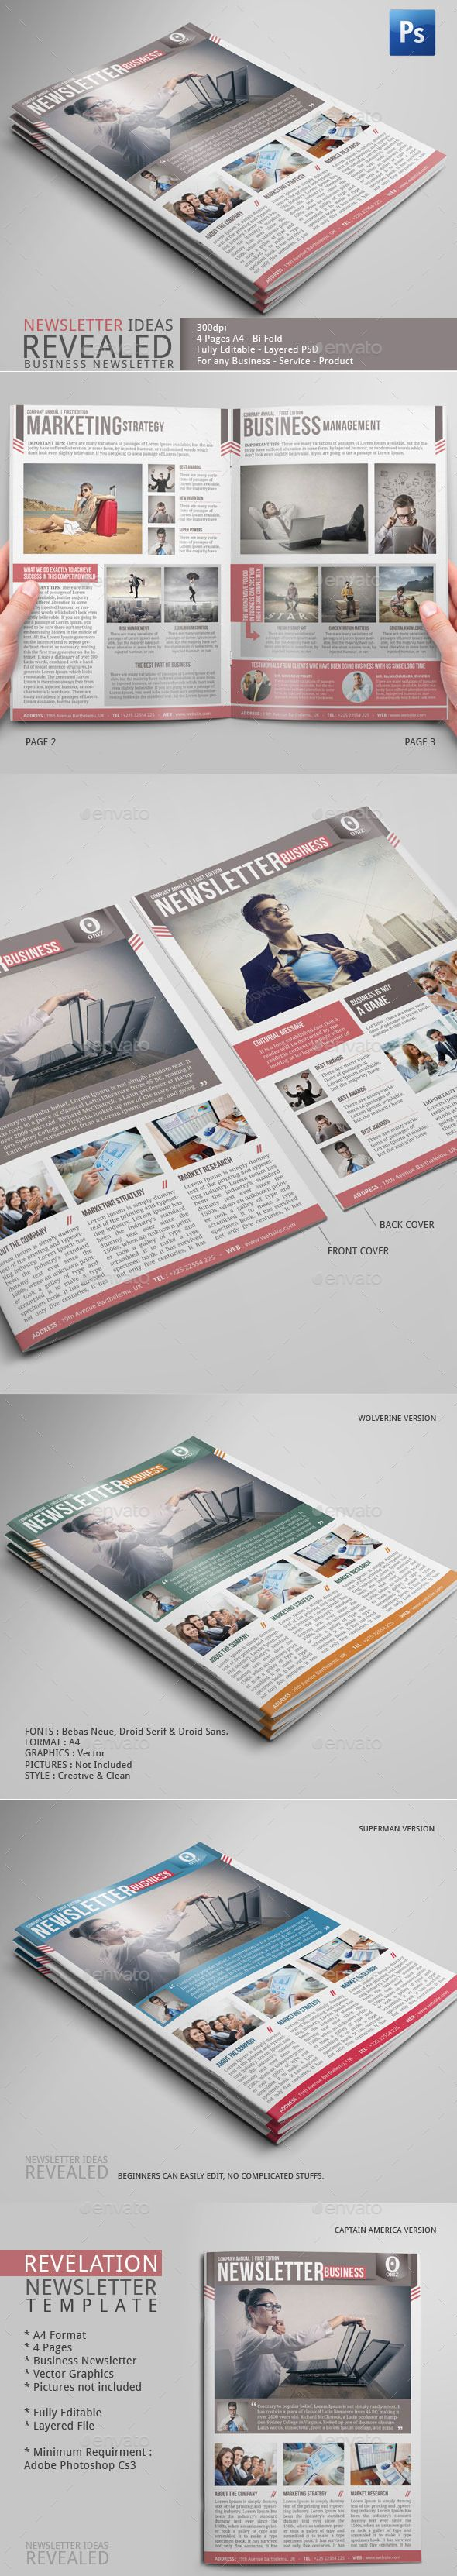 540 Best Design Ideas Brochures Books Magazines Newsletters